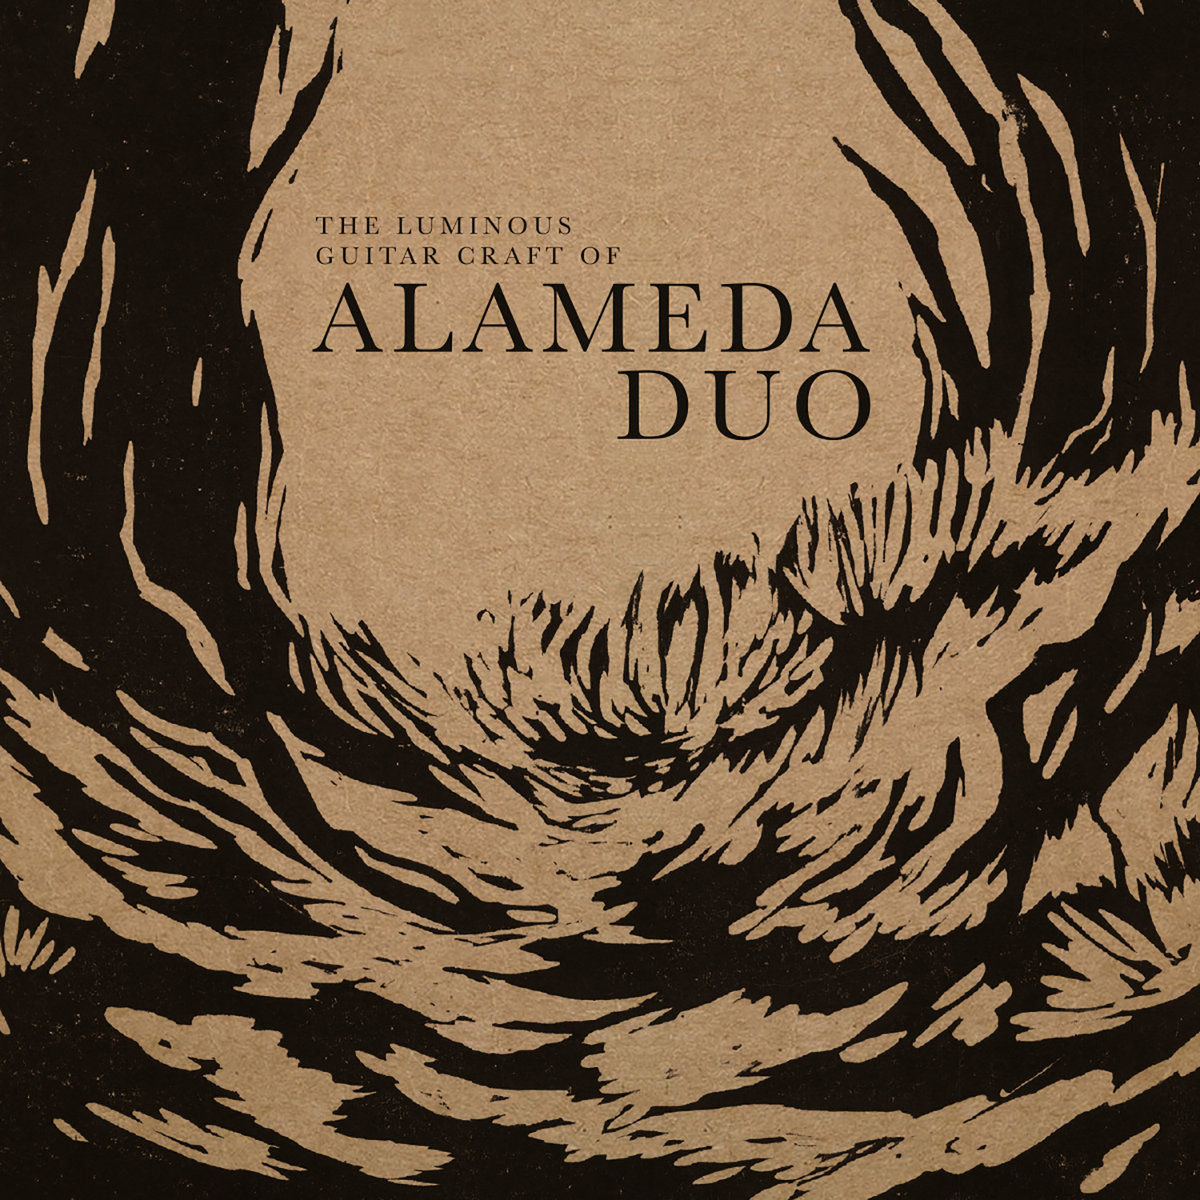 THE LUMINOUS GUITAR CRAFT OF ALAMEDA DUO